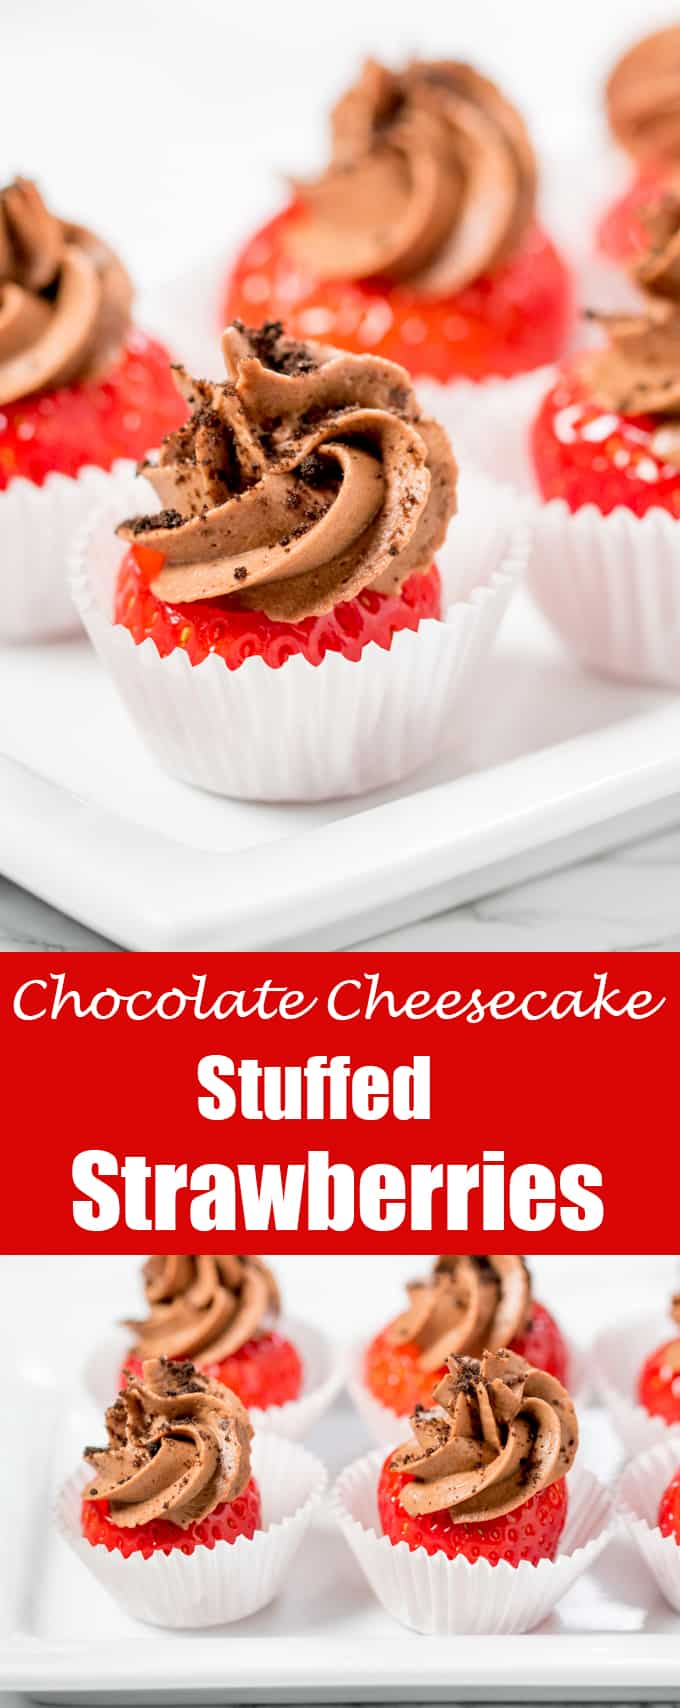 These chocolate cheesecake stuffed strawberries make a great canape, party dessert or snack!